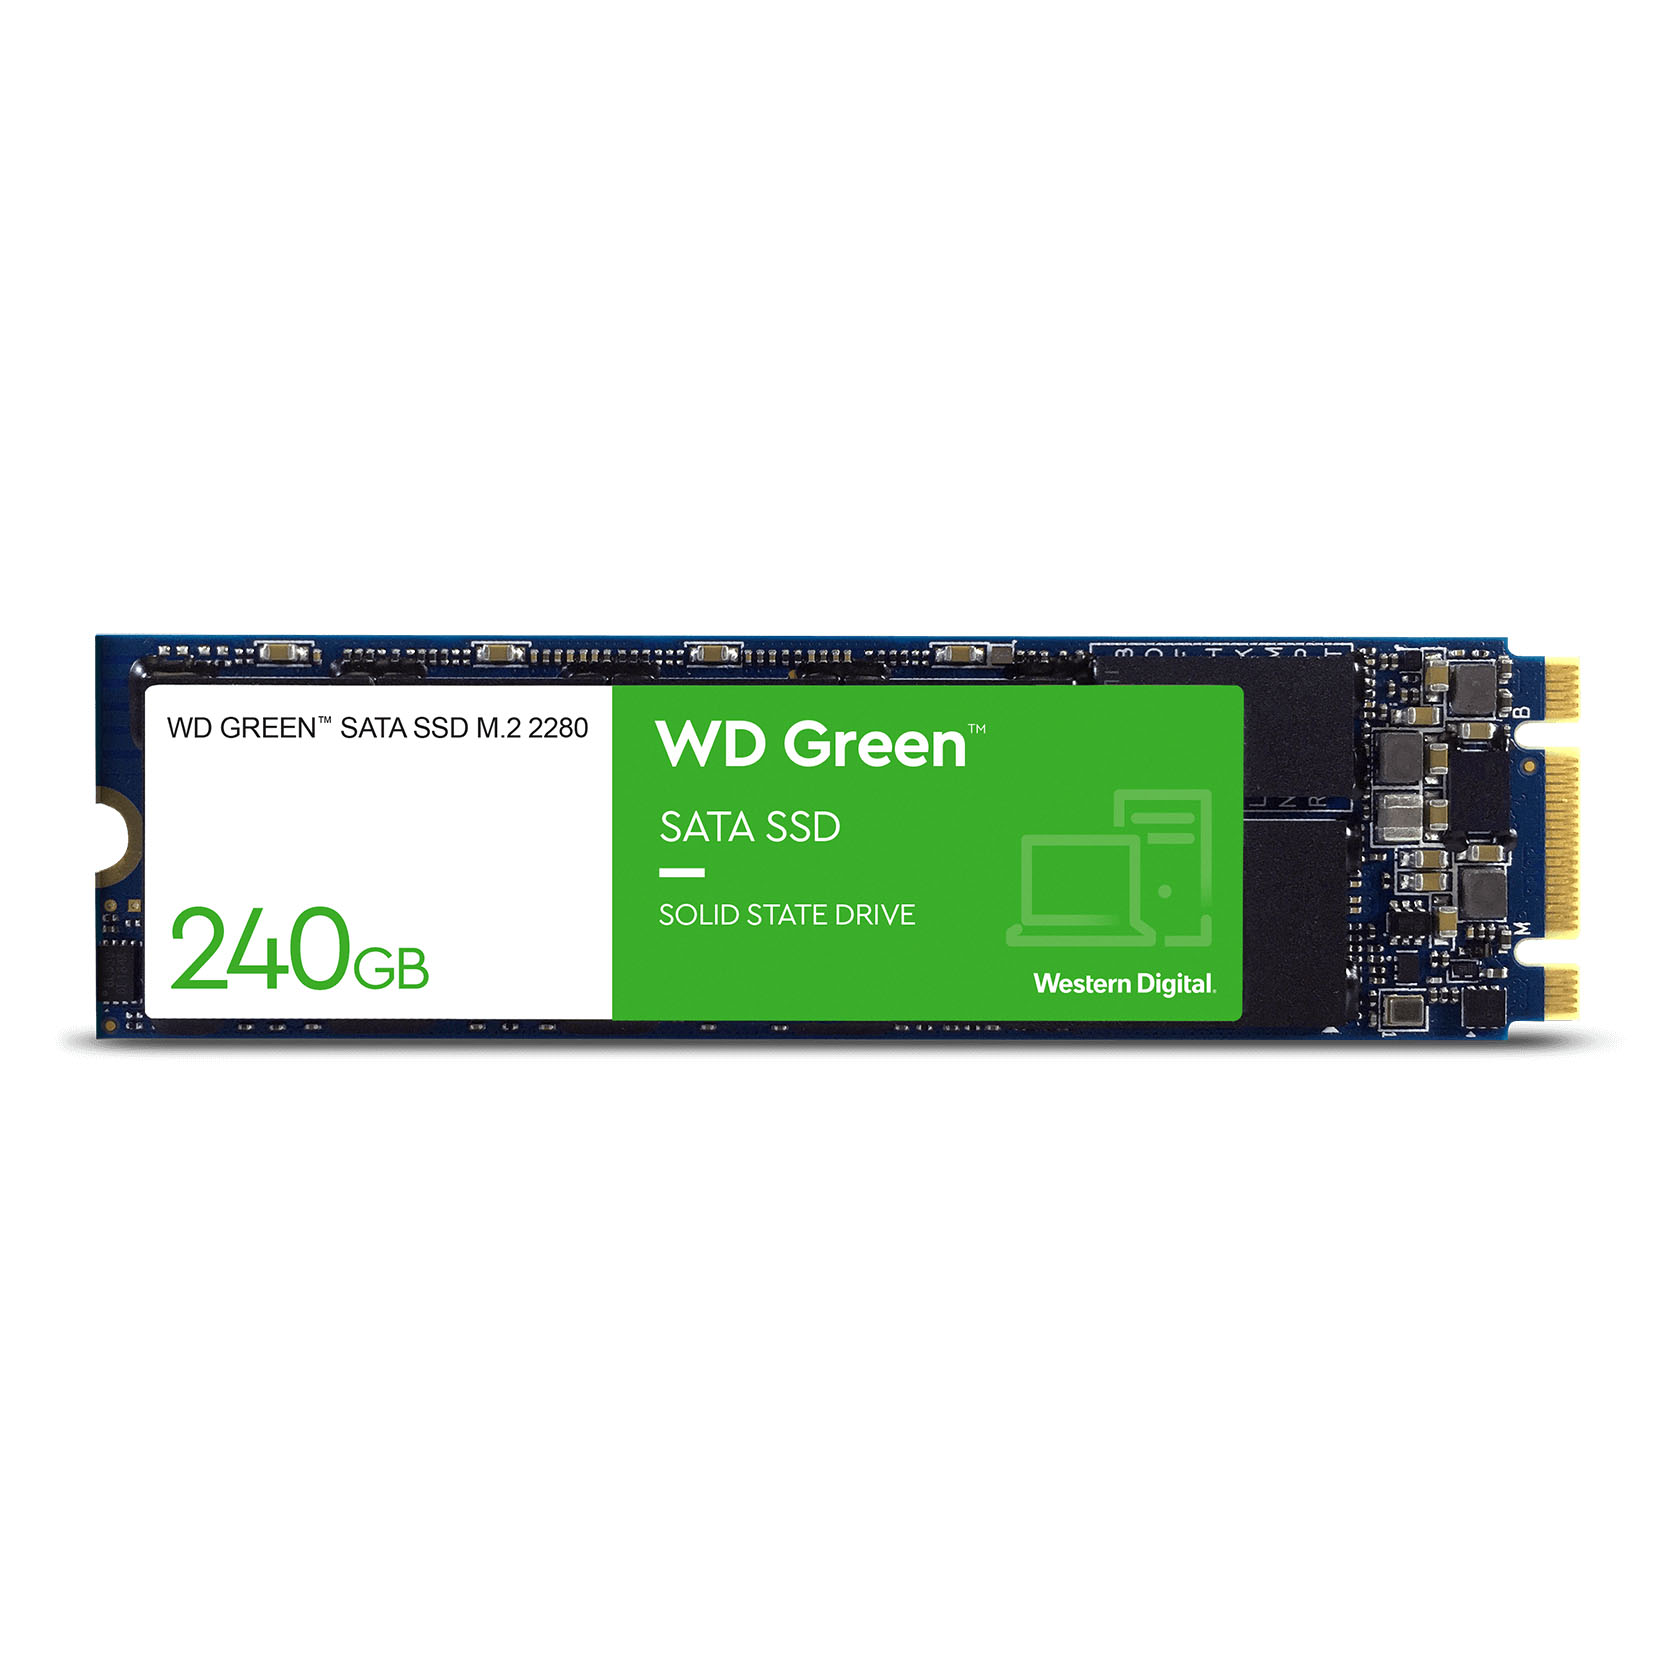 HDD SSD WD 240GB SSD M.2 GREEN 240G ,SSD HDD